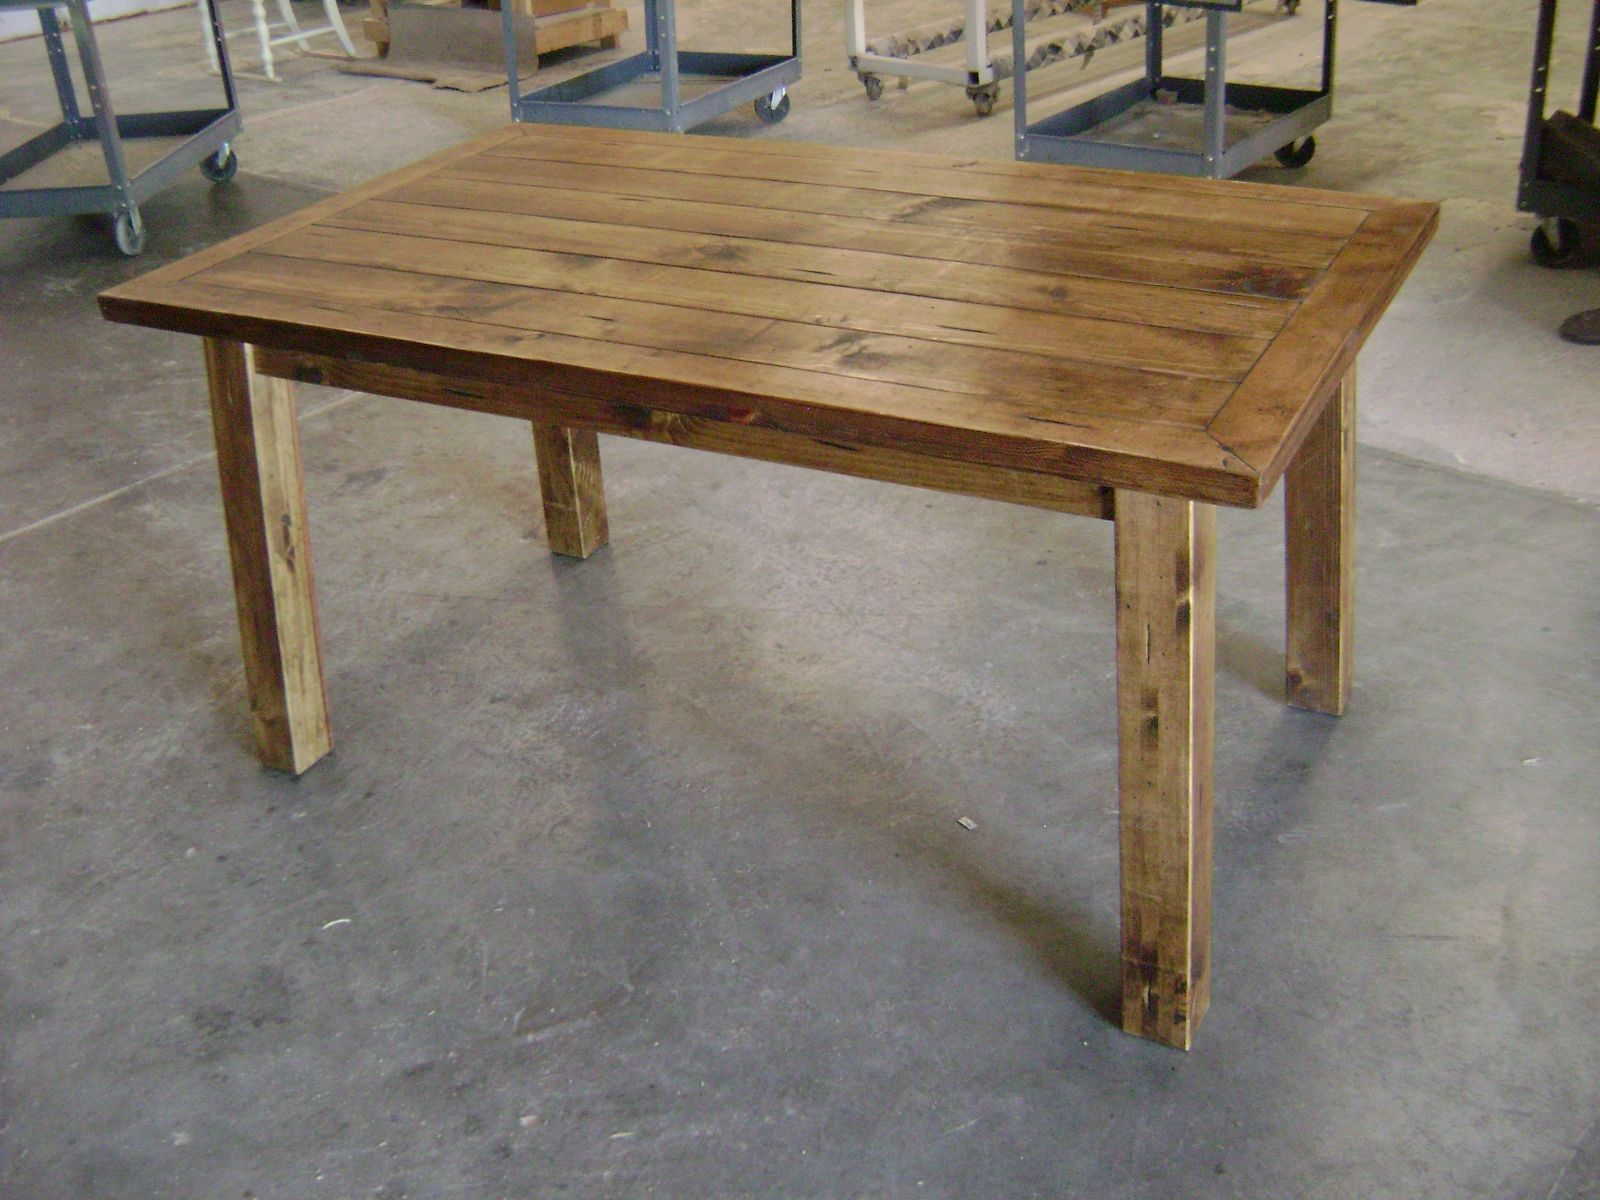 Custom Rustic Pine Dining Table By Philip Skinner Furniture CustomMadecom